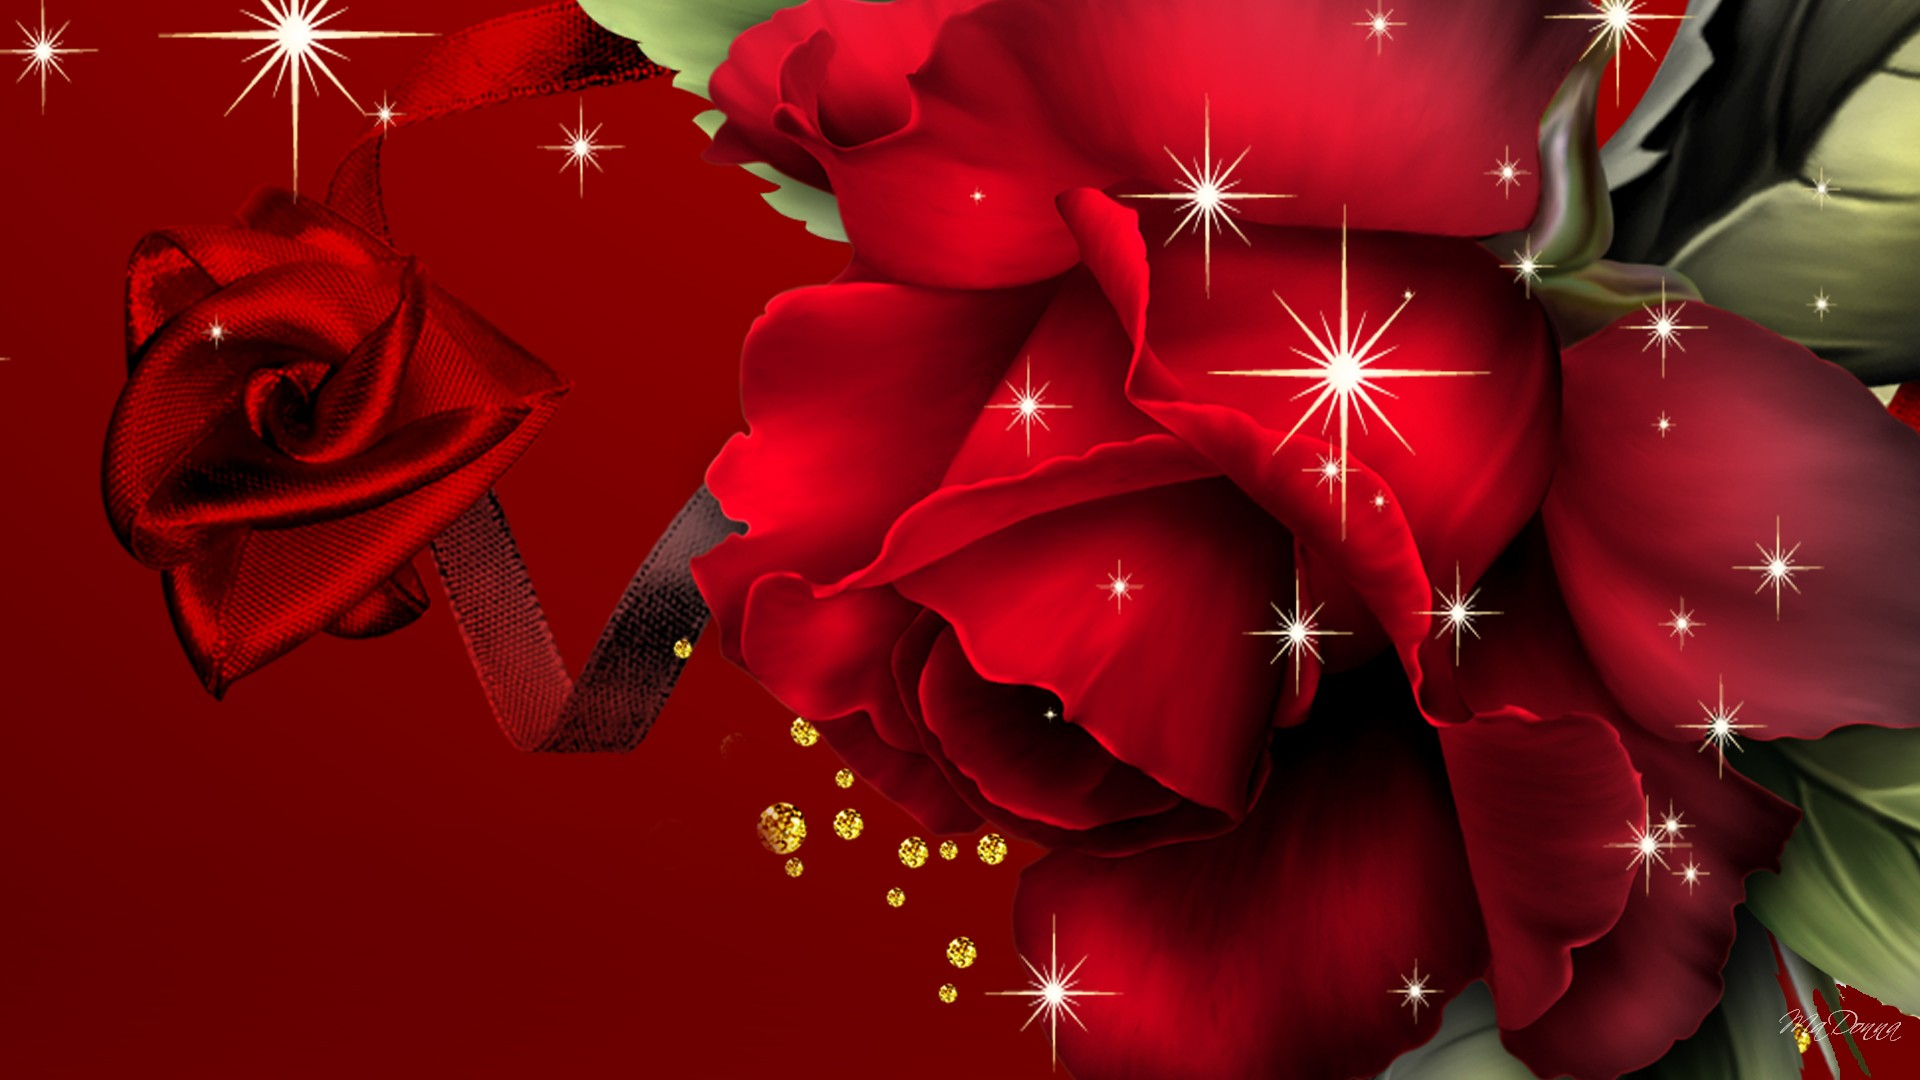 Big red roses free wallpapers hd hd wallpaper - Bunch of roses hd images ...